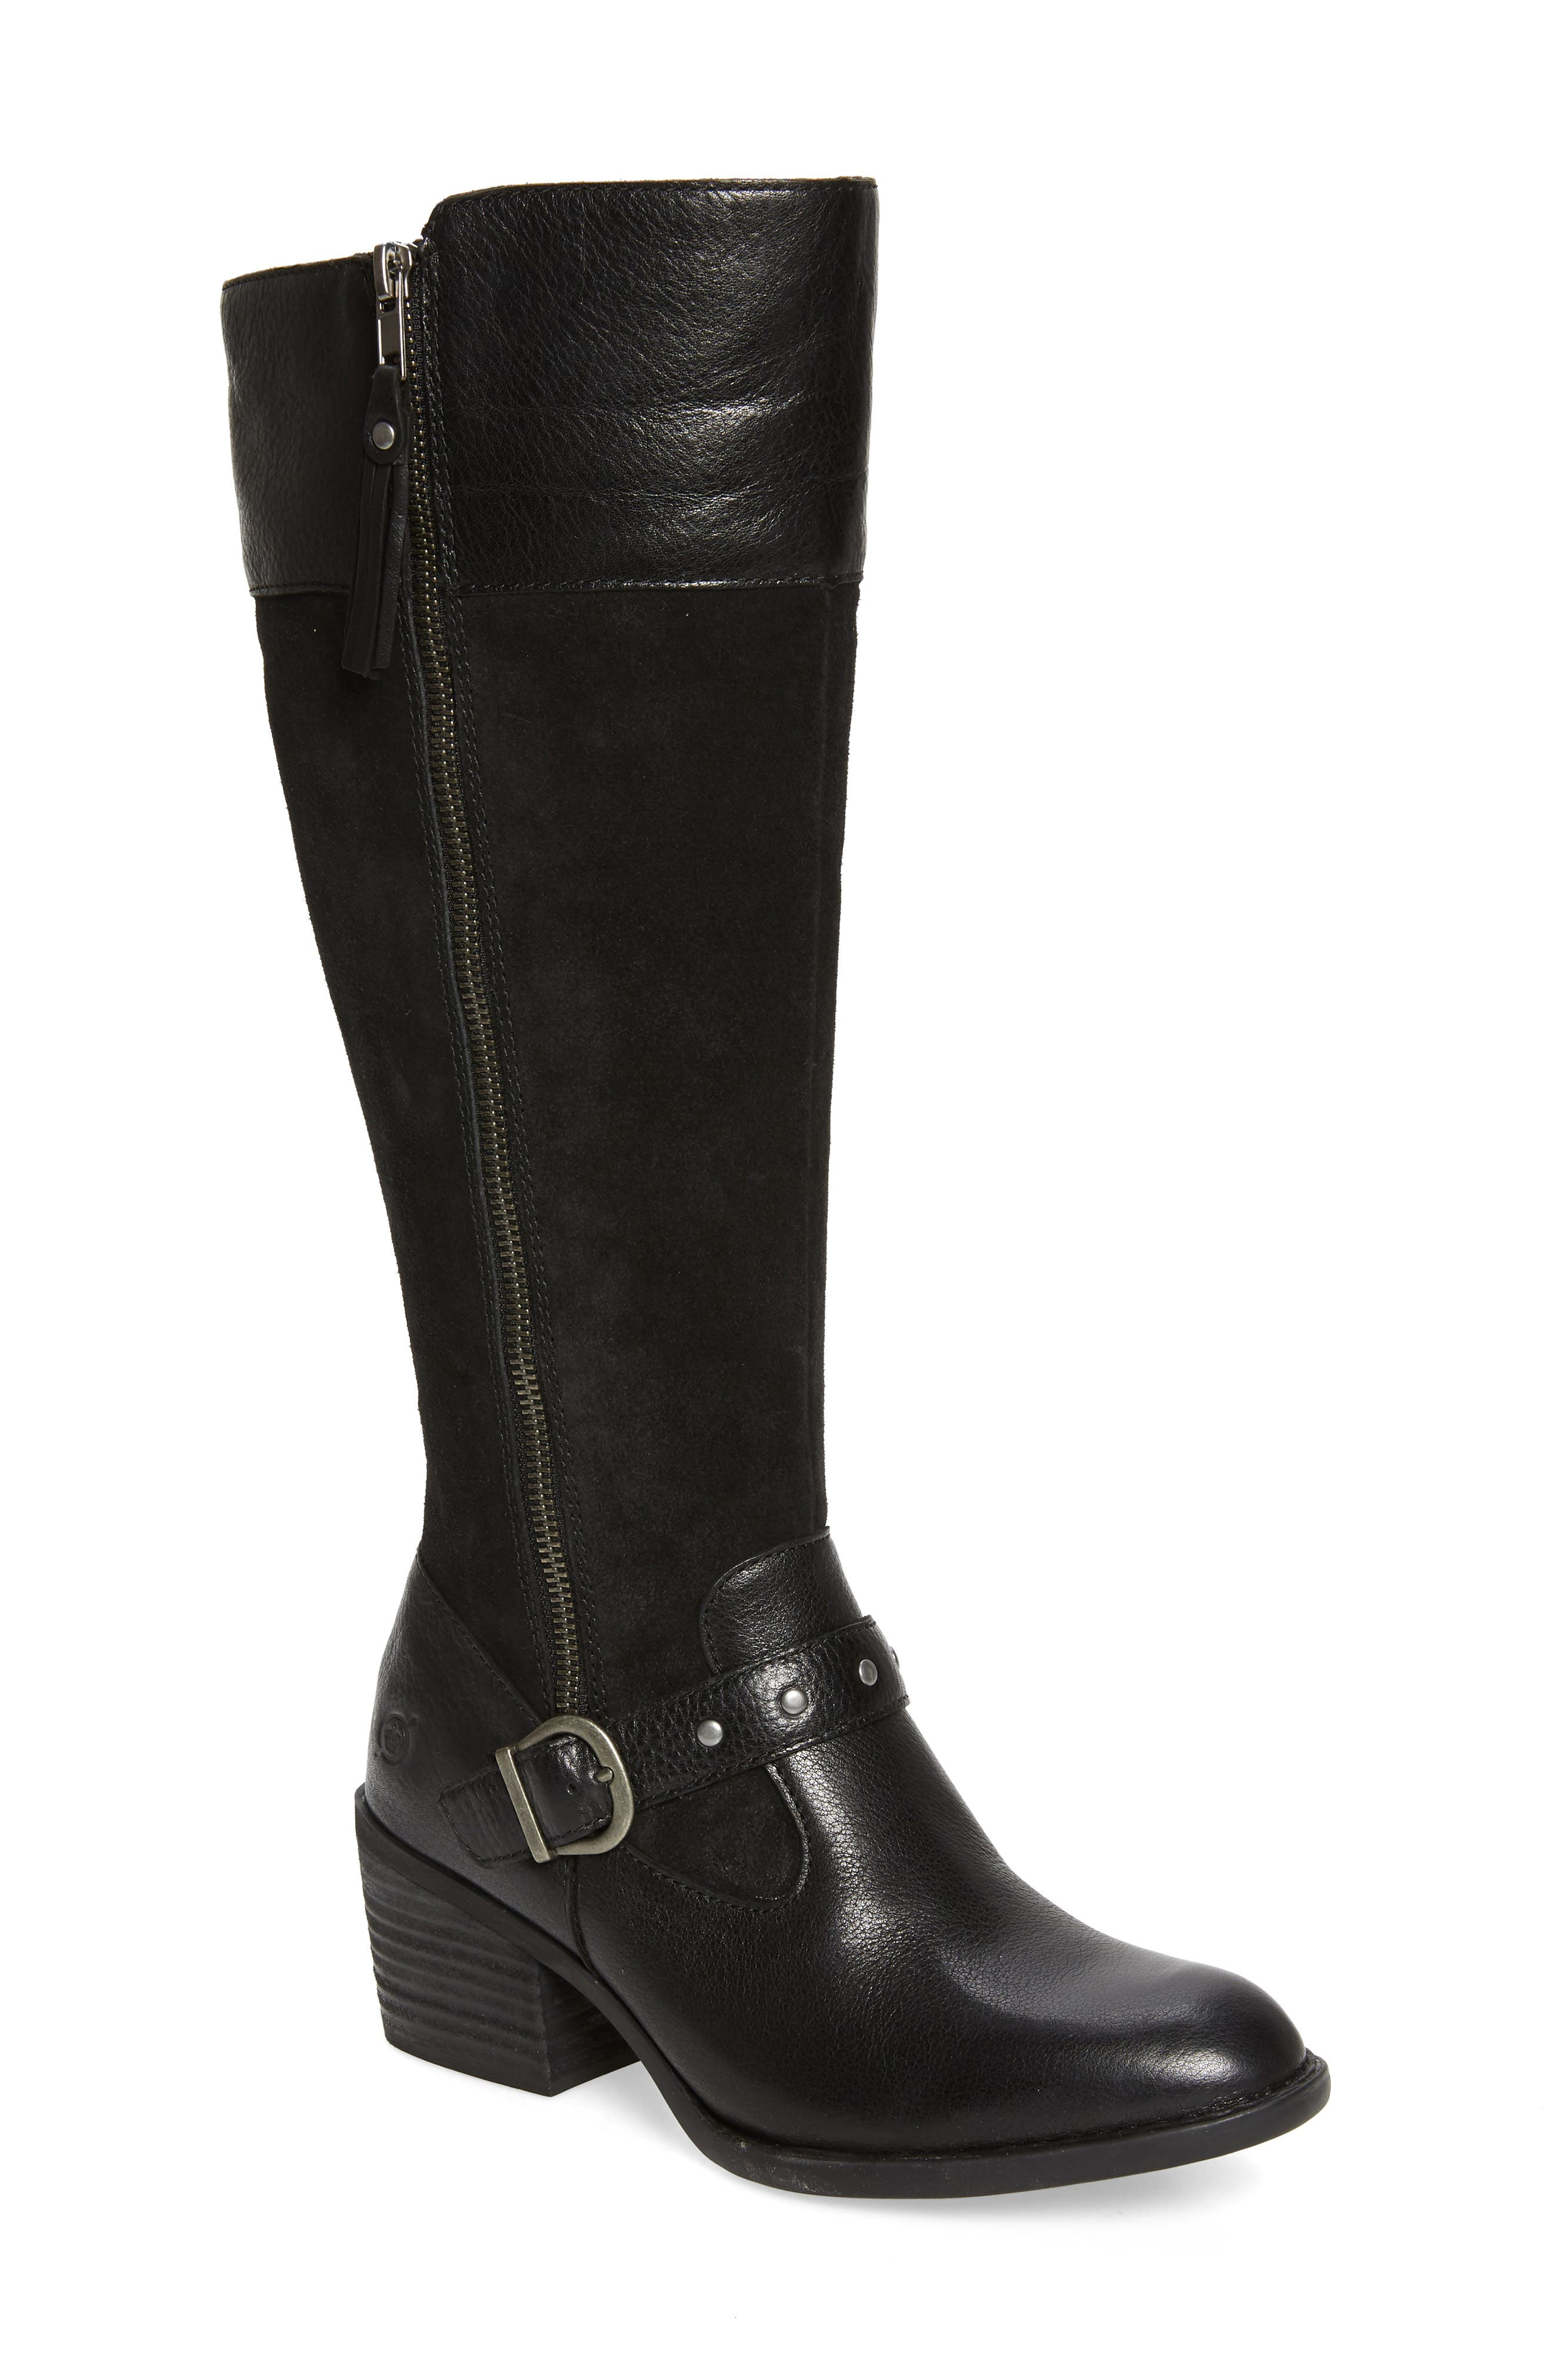 For rustic style and easy comfort, this knee-high boot features vintage-effect distressing, a chunky stacked heel and an outer zipper with tassel. Style Name:B?rn Alize Double Zip Boot (Women). Style Number: 6044671. Available in stores.